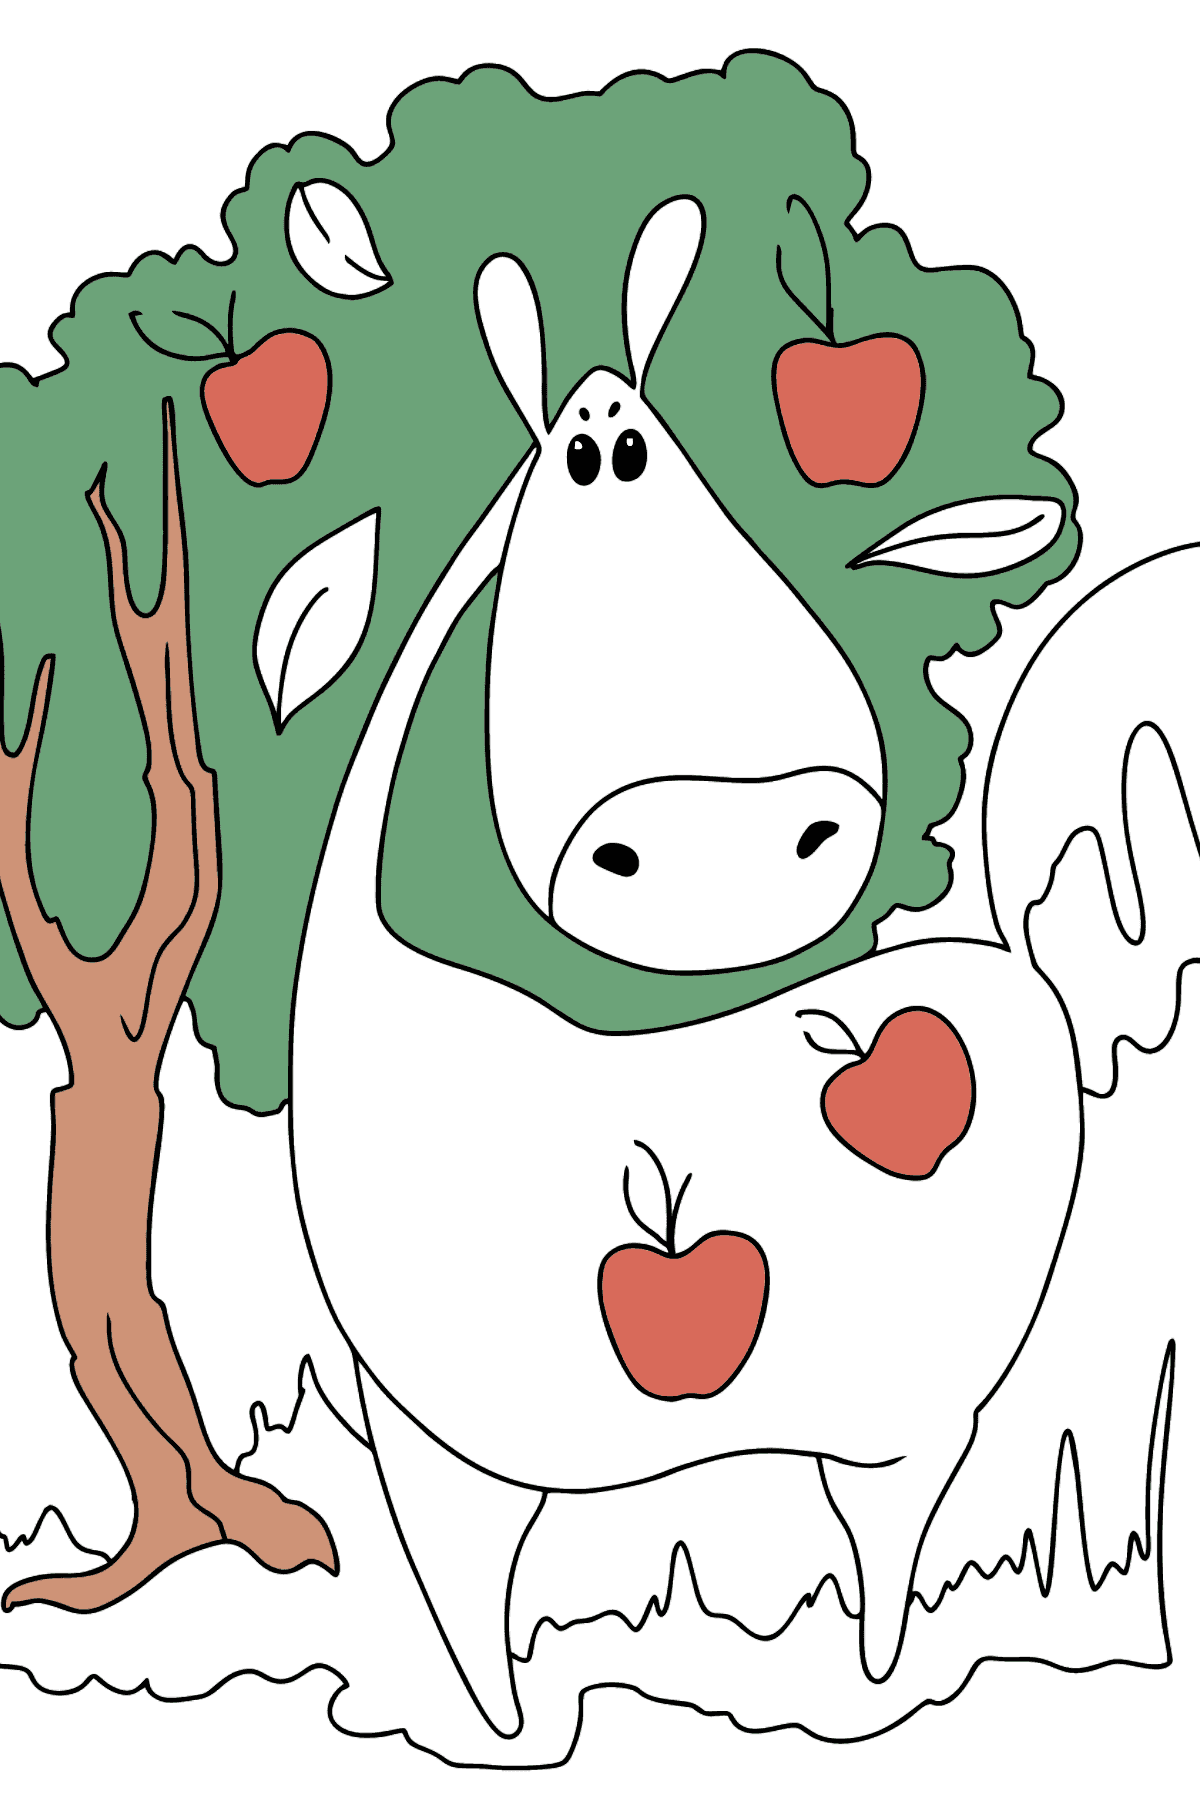 Coloring page a Horse with apples - Coloring Pages for Kids